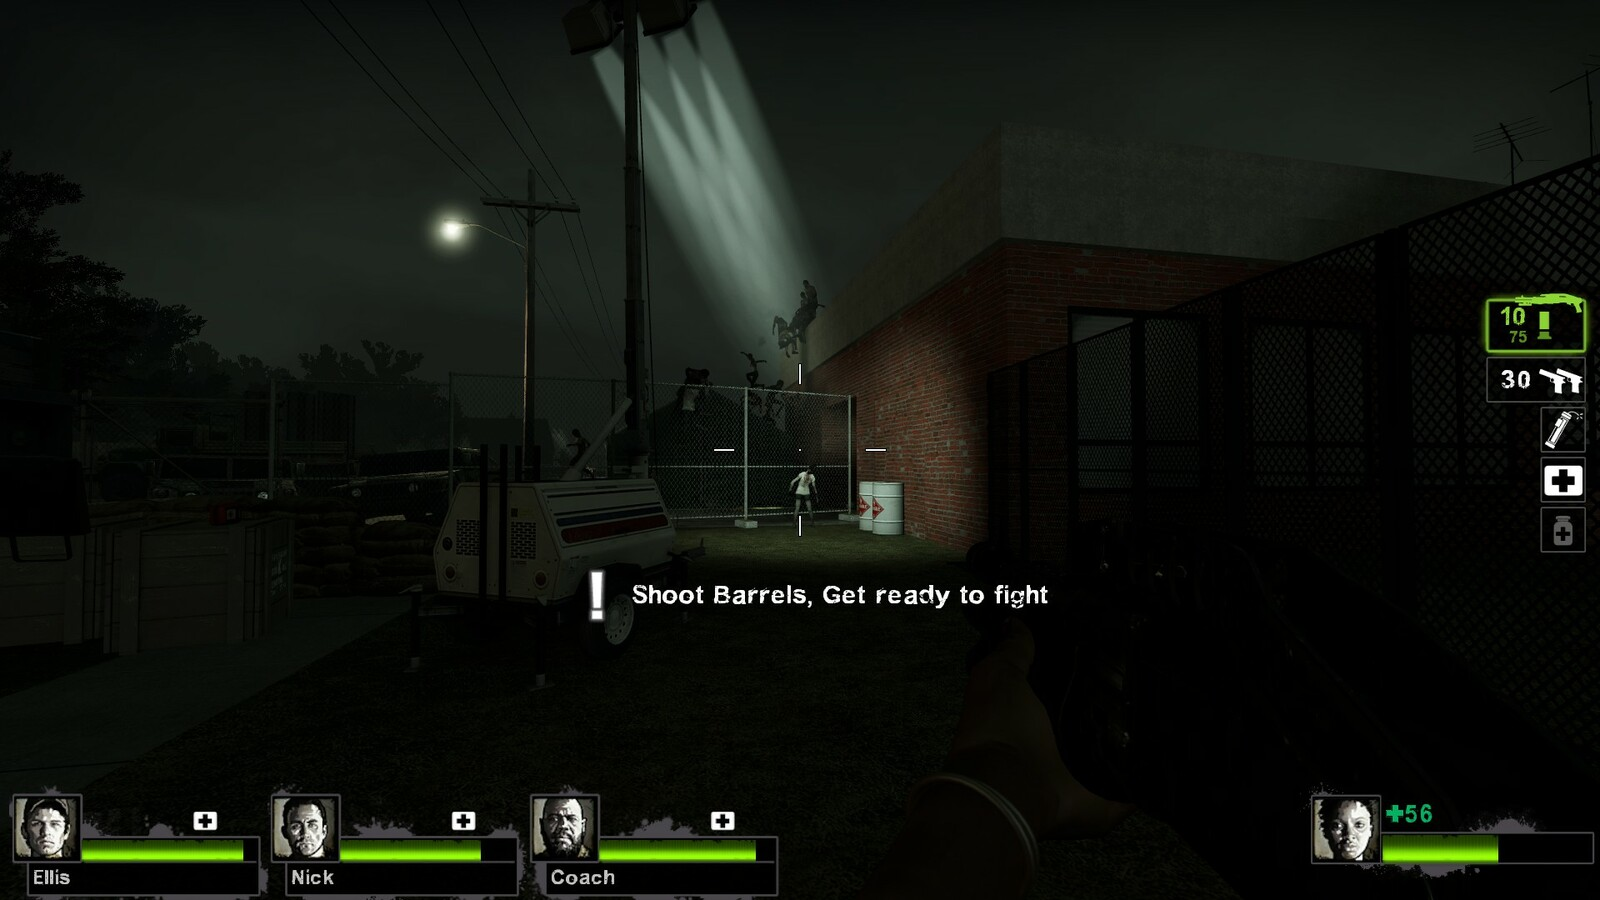 The first event, shown by an onscreen nav point and lighting. Players must shoot these explosive barrels to break into the school building.